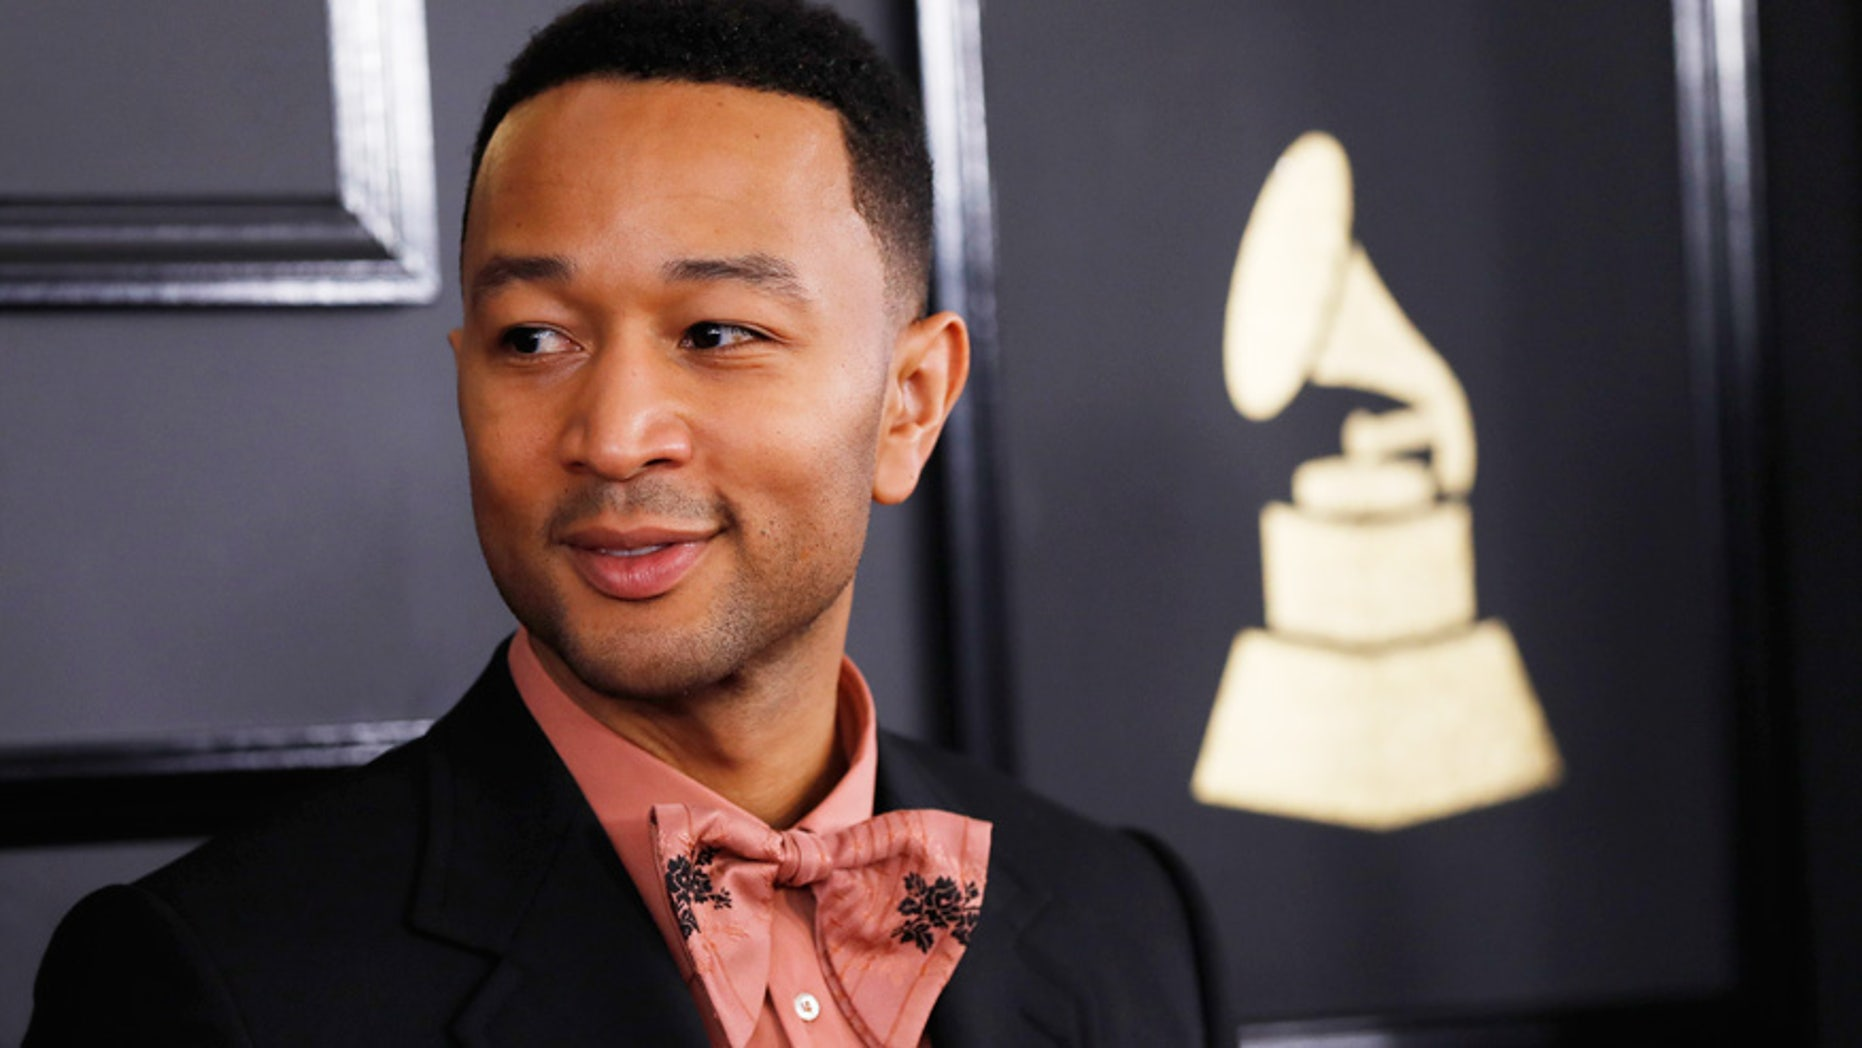 John Legend opens up about life under Trump presidency and fatherhood. Here Legend poses for photos at the Grammy Awards in Los Angeles.